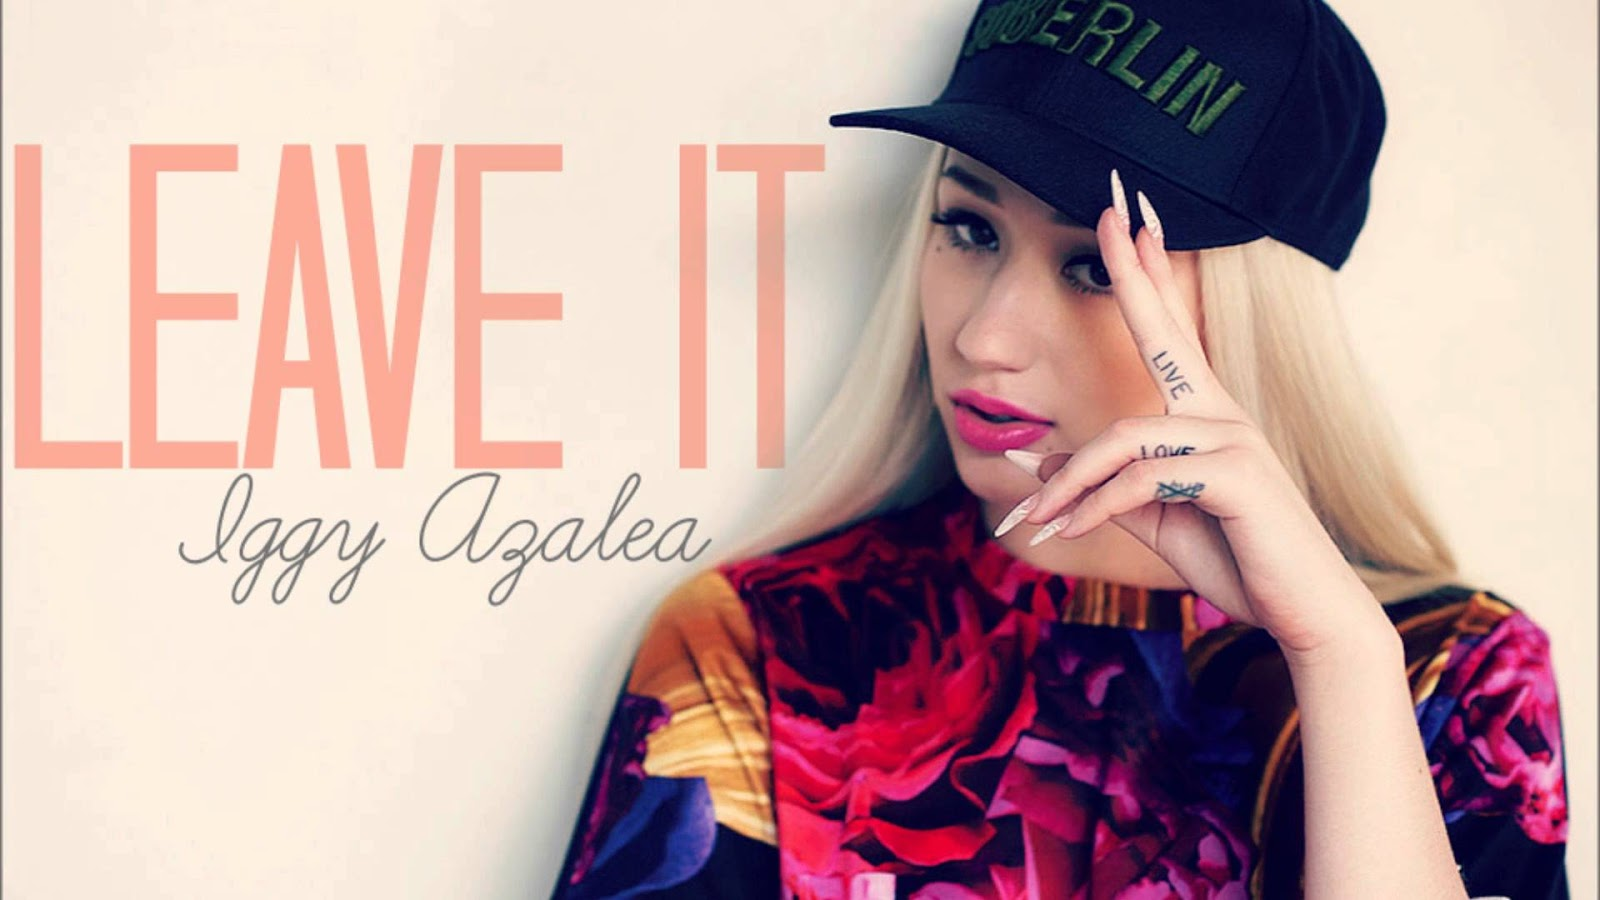 iggy azalea hd wallpapers most beautiful places in the